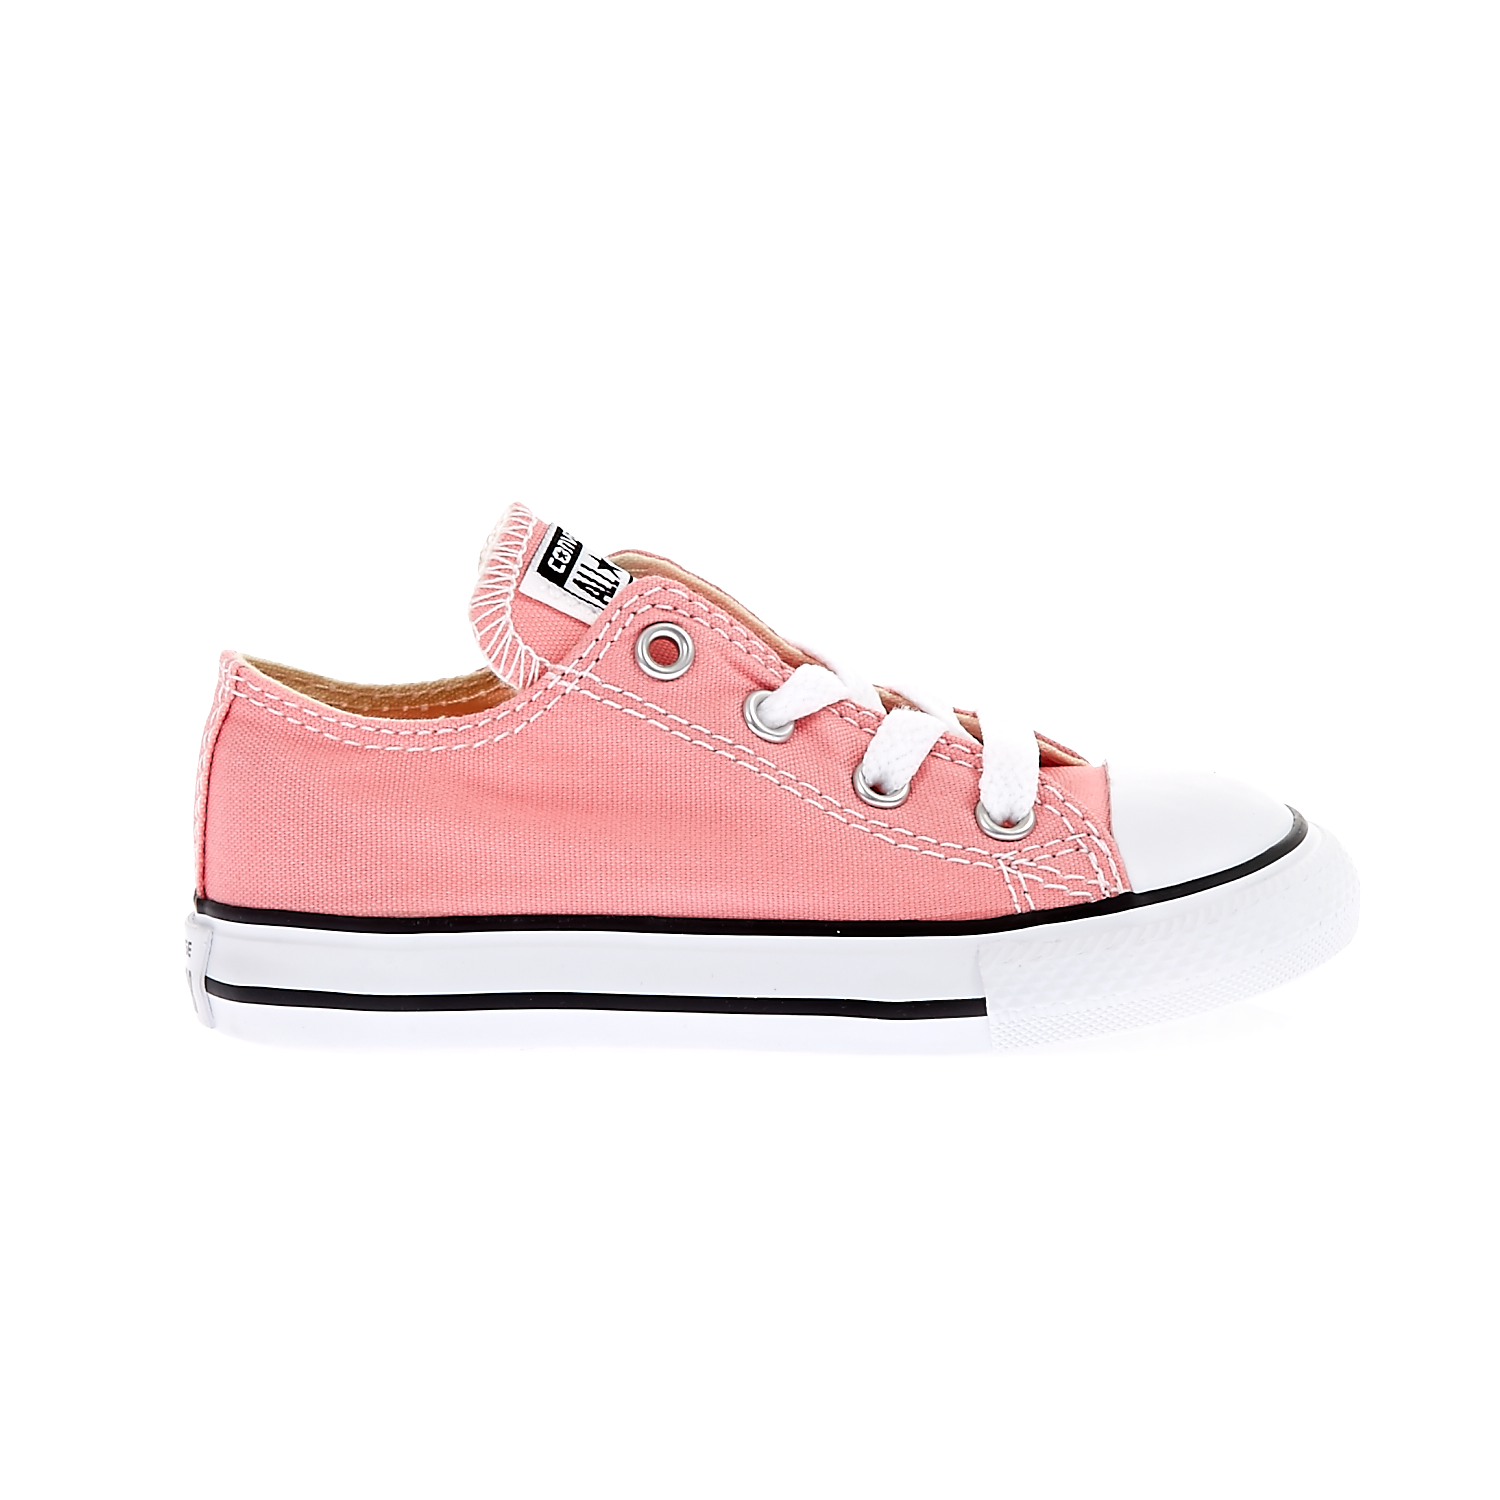 CONVERSE – Βρεφικά παπούτσια Chuck Taylor All Star Ox ροζ